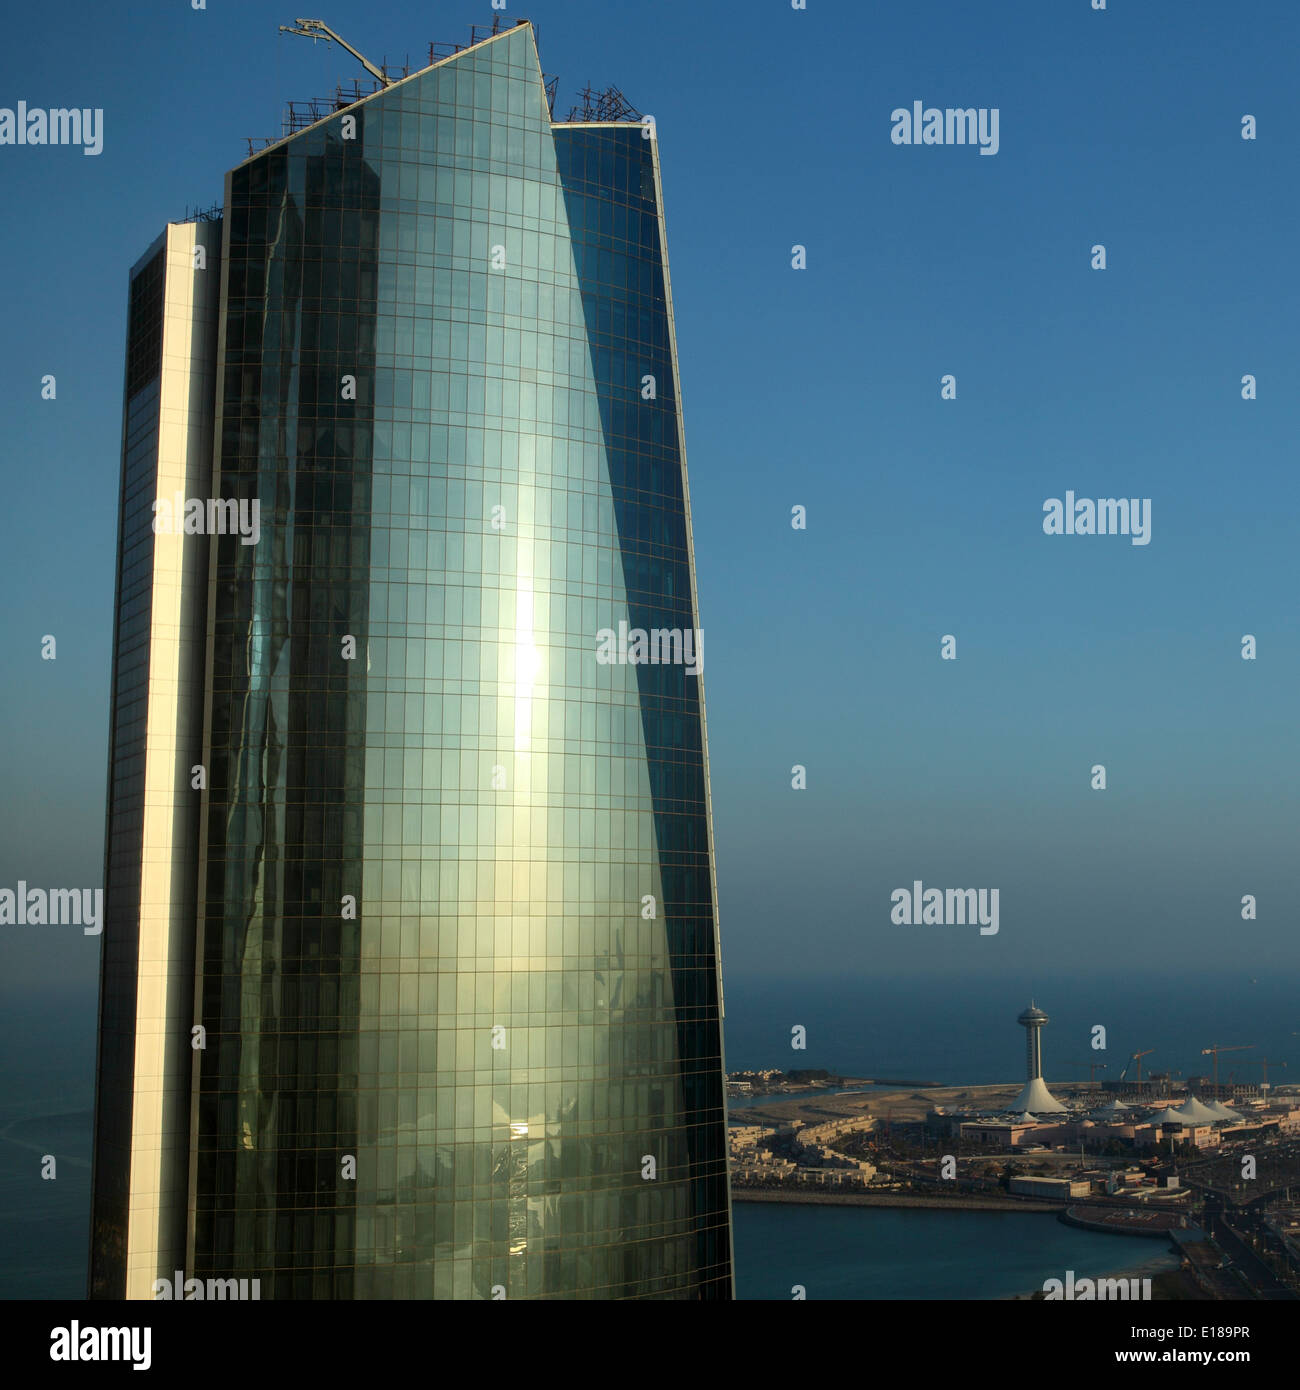 A close up of one of the Etihad Towers in Abu Dhabi. - Stock Image